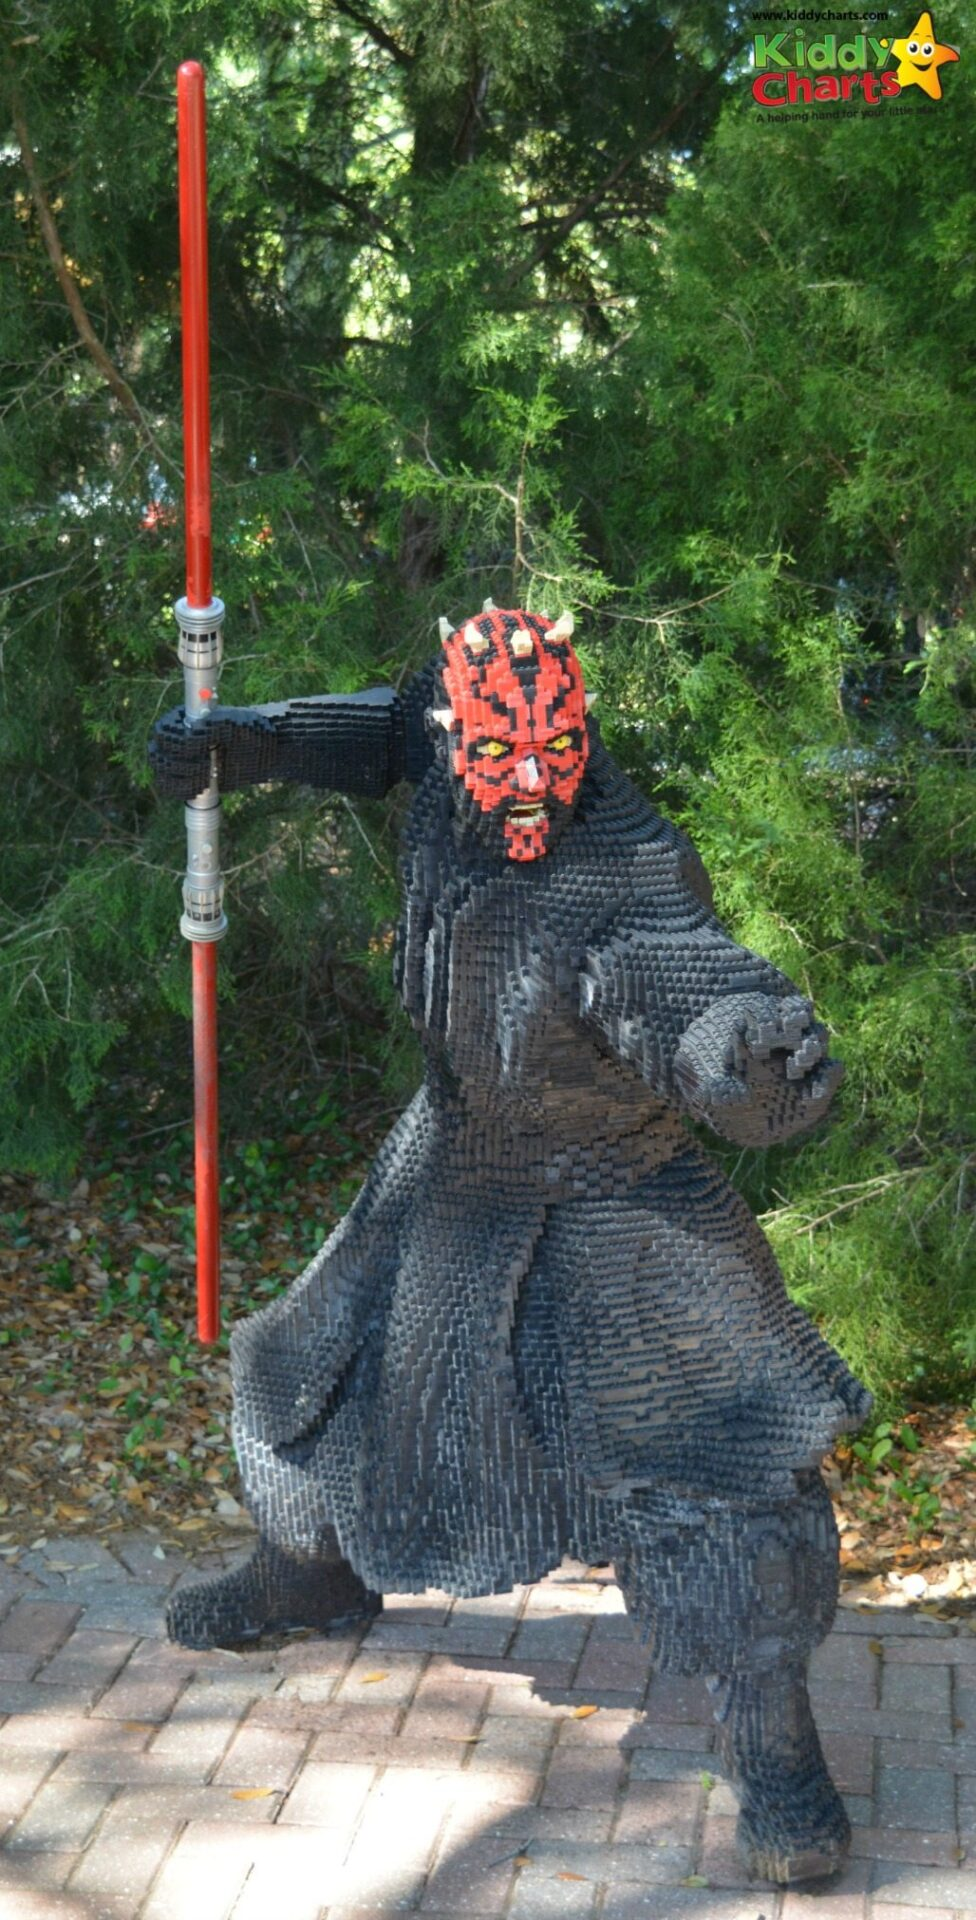 Darth Maul within the Legoland Florida Miniland is definitely one of MY favourites there...